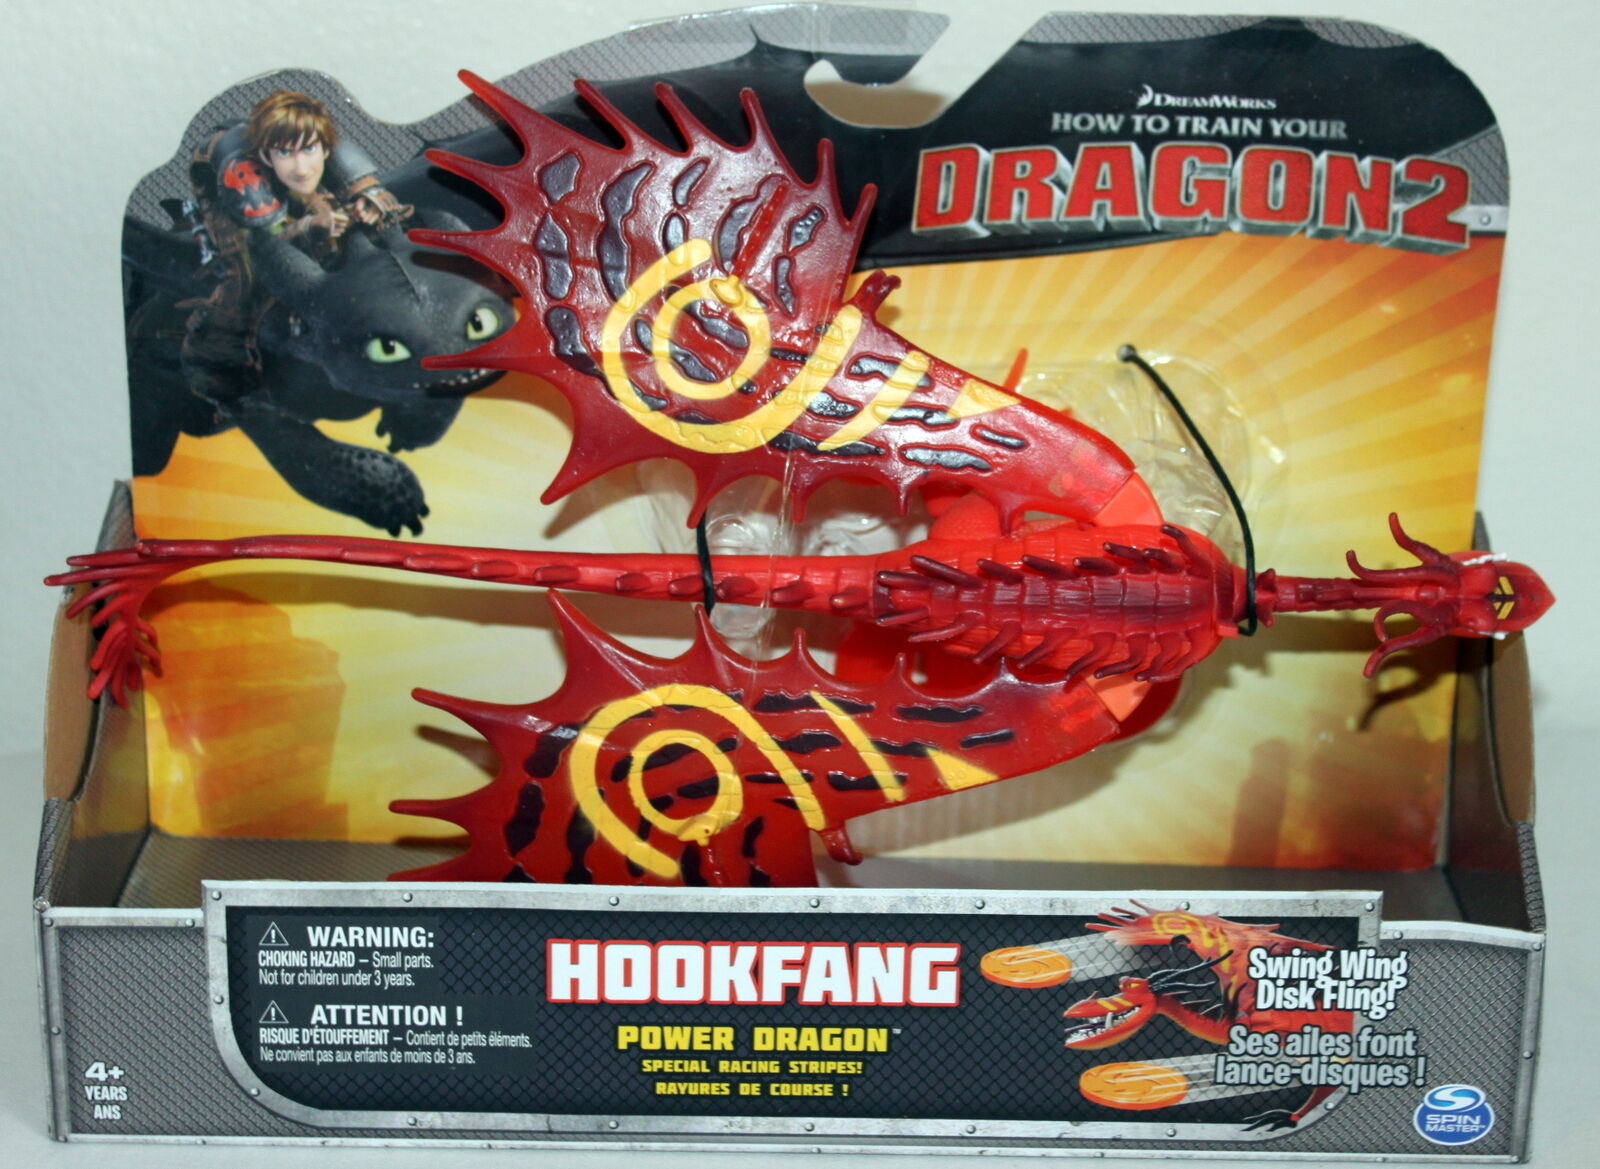 HTTYD How to Train Your Dragon Spin Master Toy Figurine HOOKFANG Power Dragon